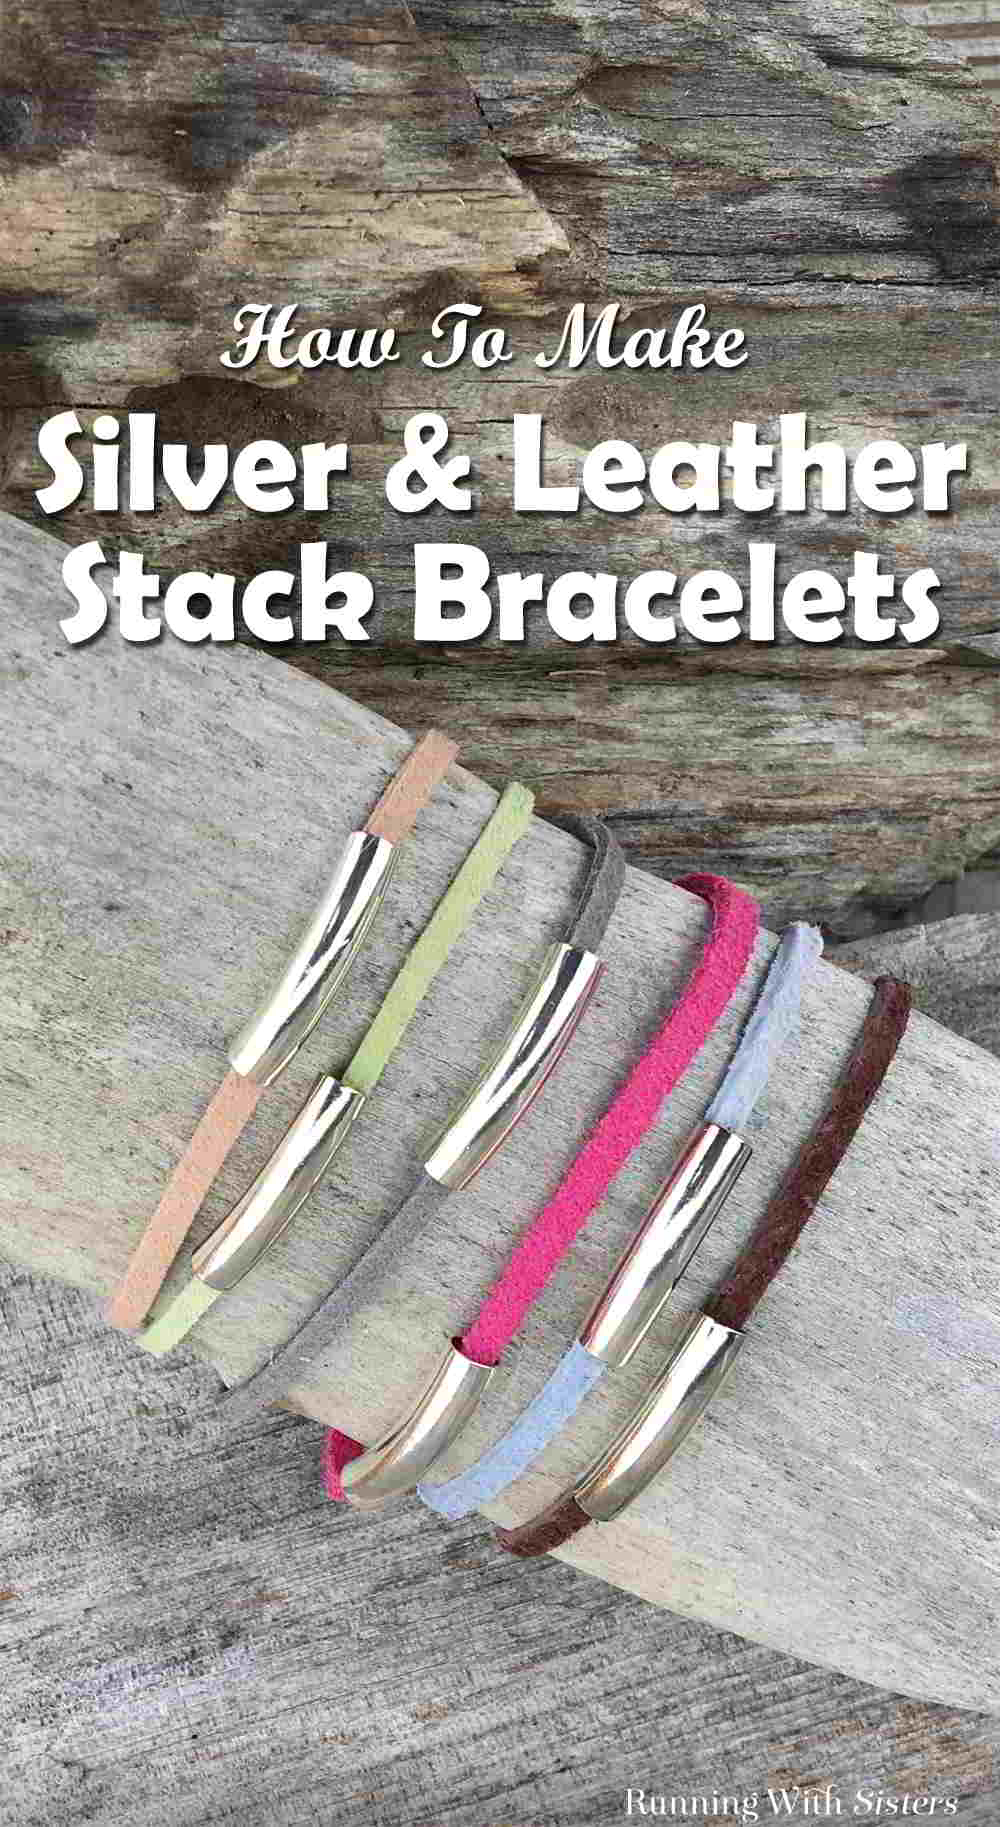 Make a set of Silver and Leather Stack Bracelets in just a few easy steps. We'll show you how with this jewelry making video tutorial.